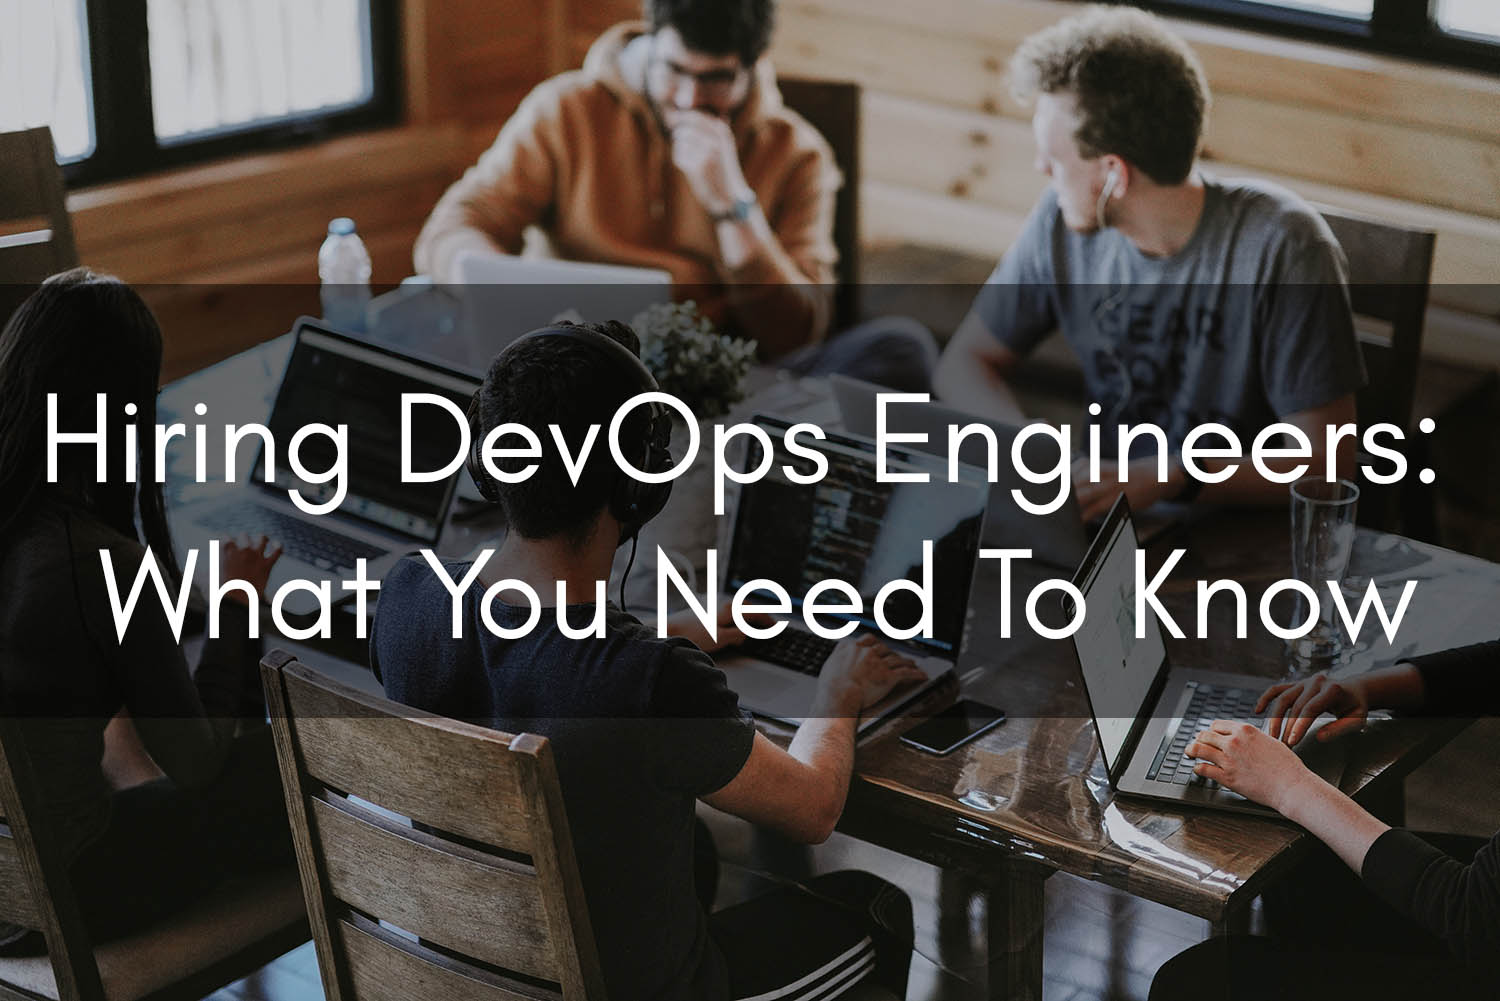 Clouductivity - DevOps Hiring - What You Need To Know